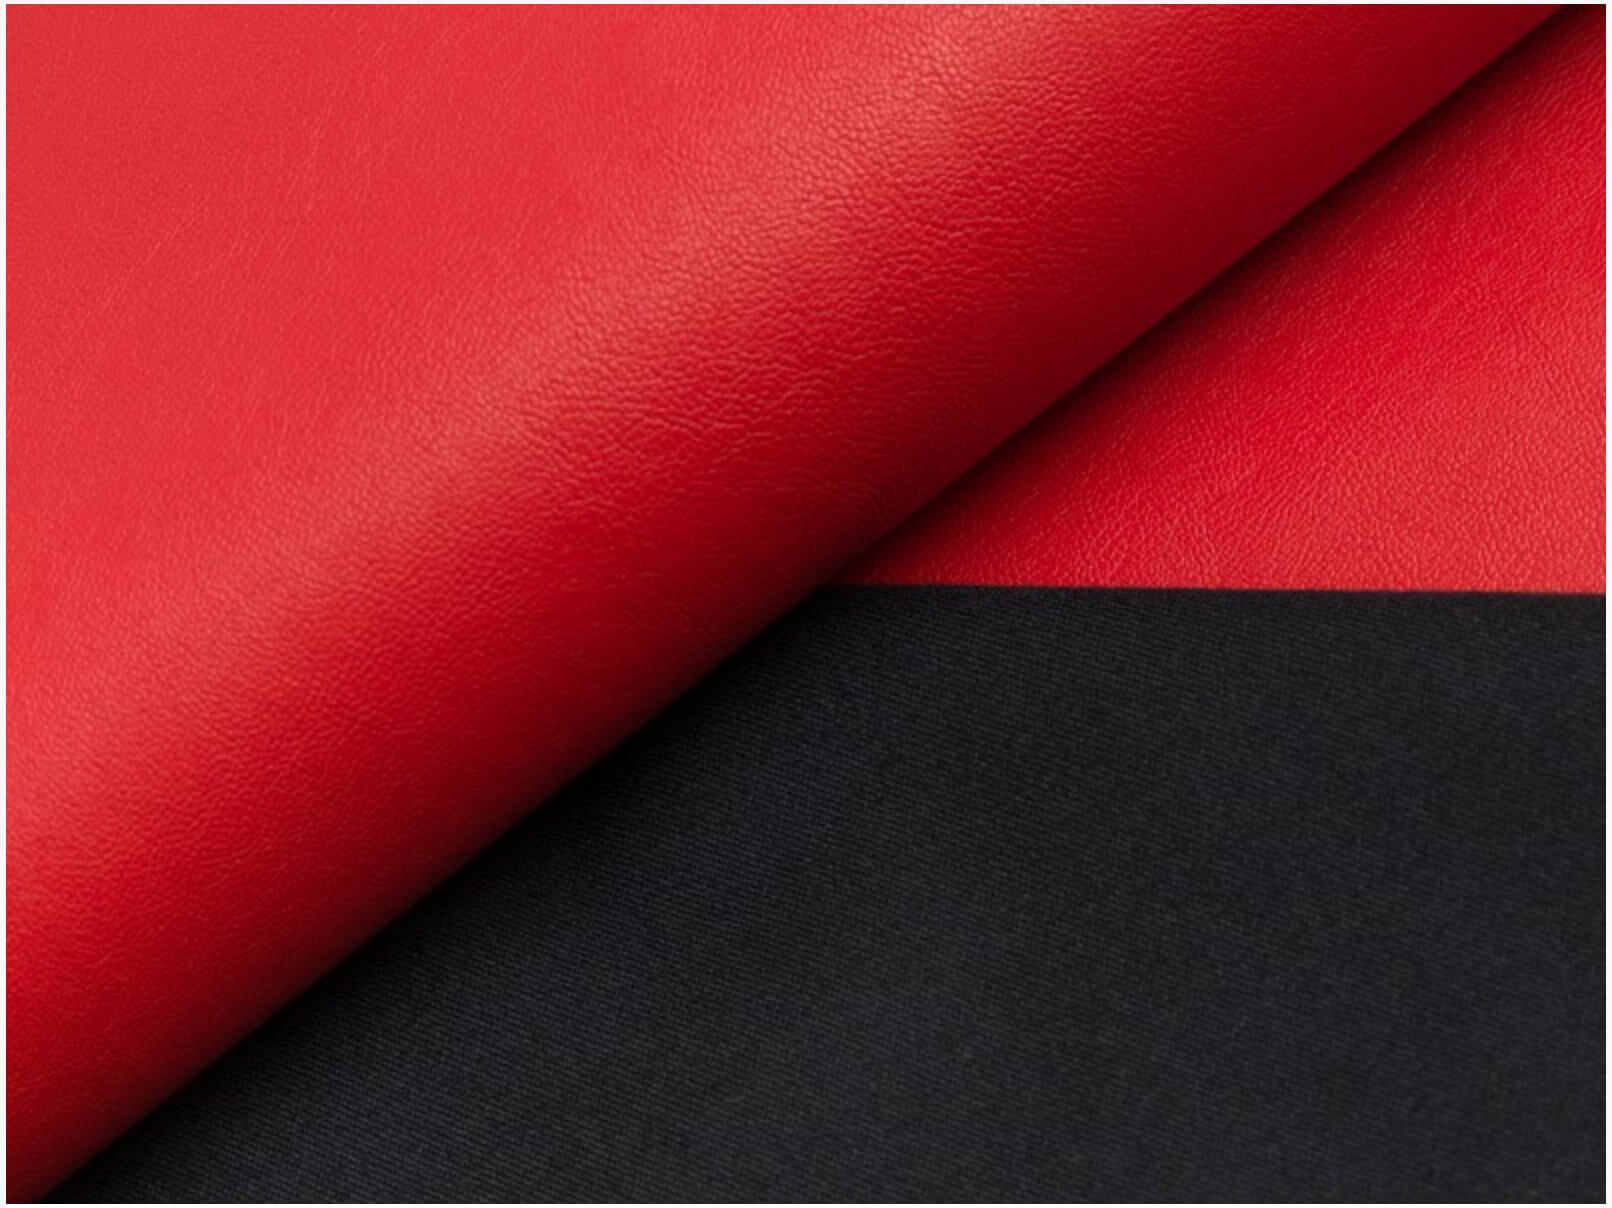 red-soft-faux-leather-viscose-back-fabric-imitation-pu-leather-material-for-clothes-upholstery-decor-145cm-wide-5b8f00ef1.jpg